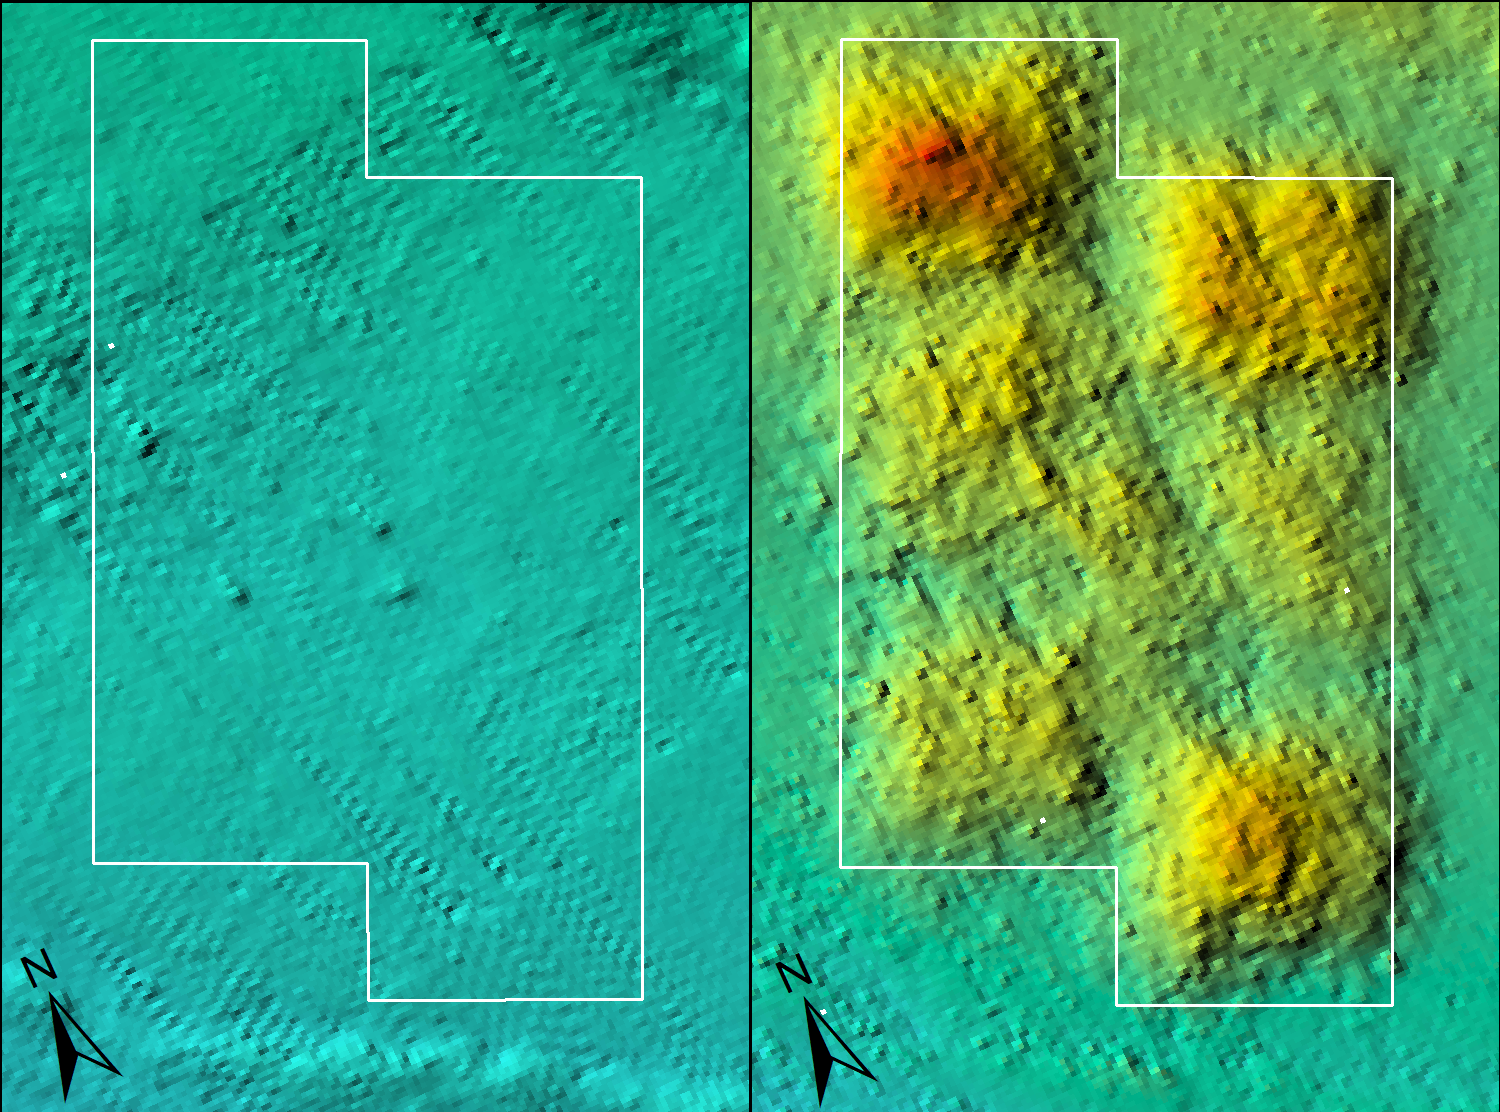 Before and after bathymetry imagery of block 2A